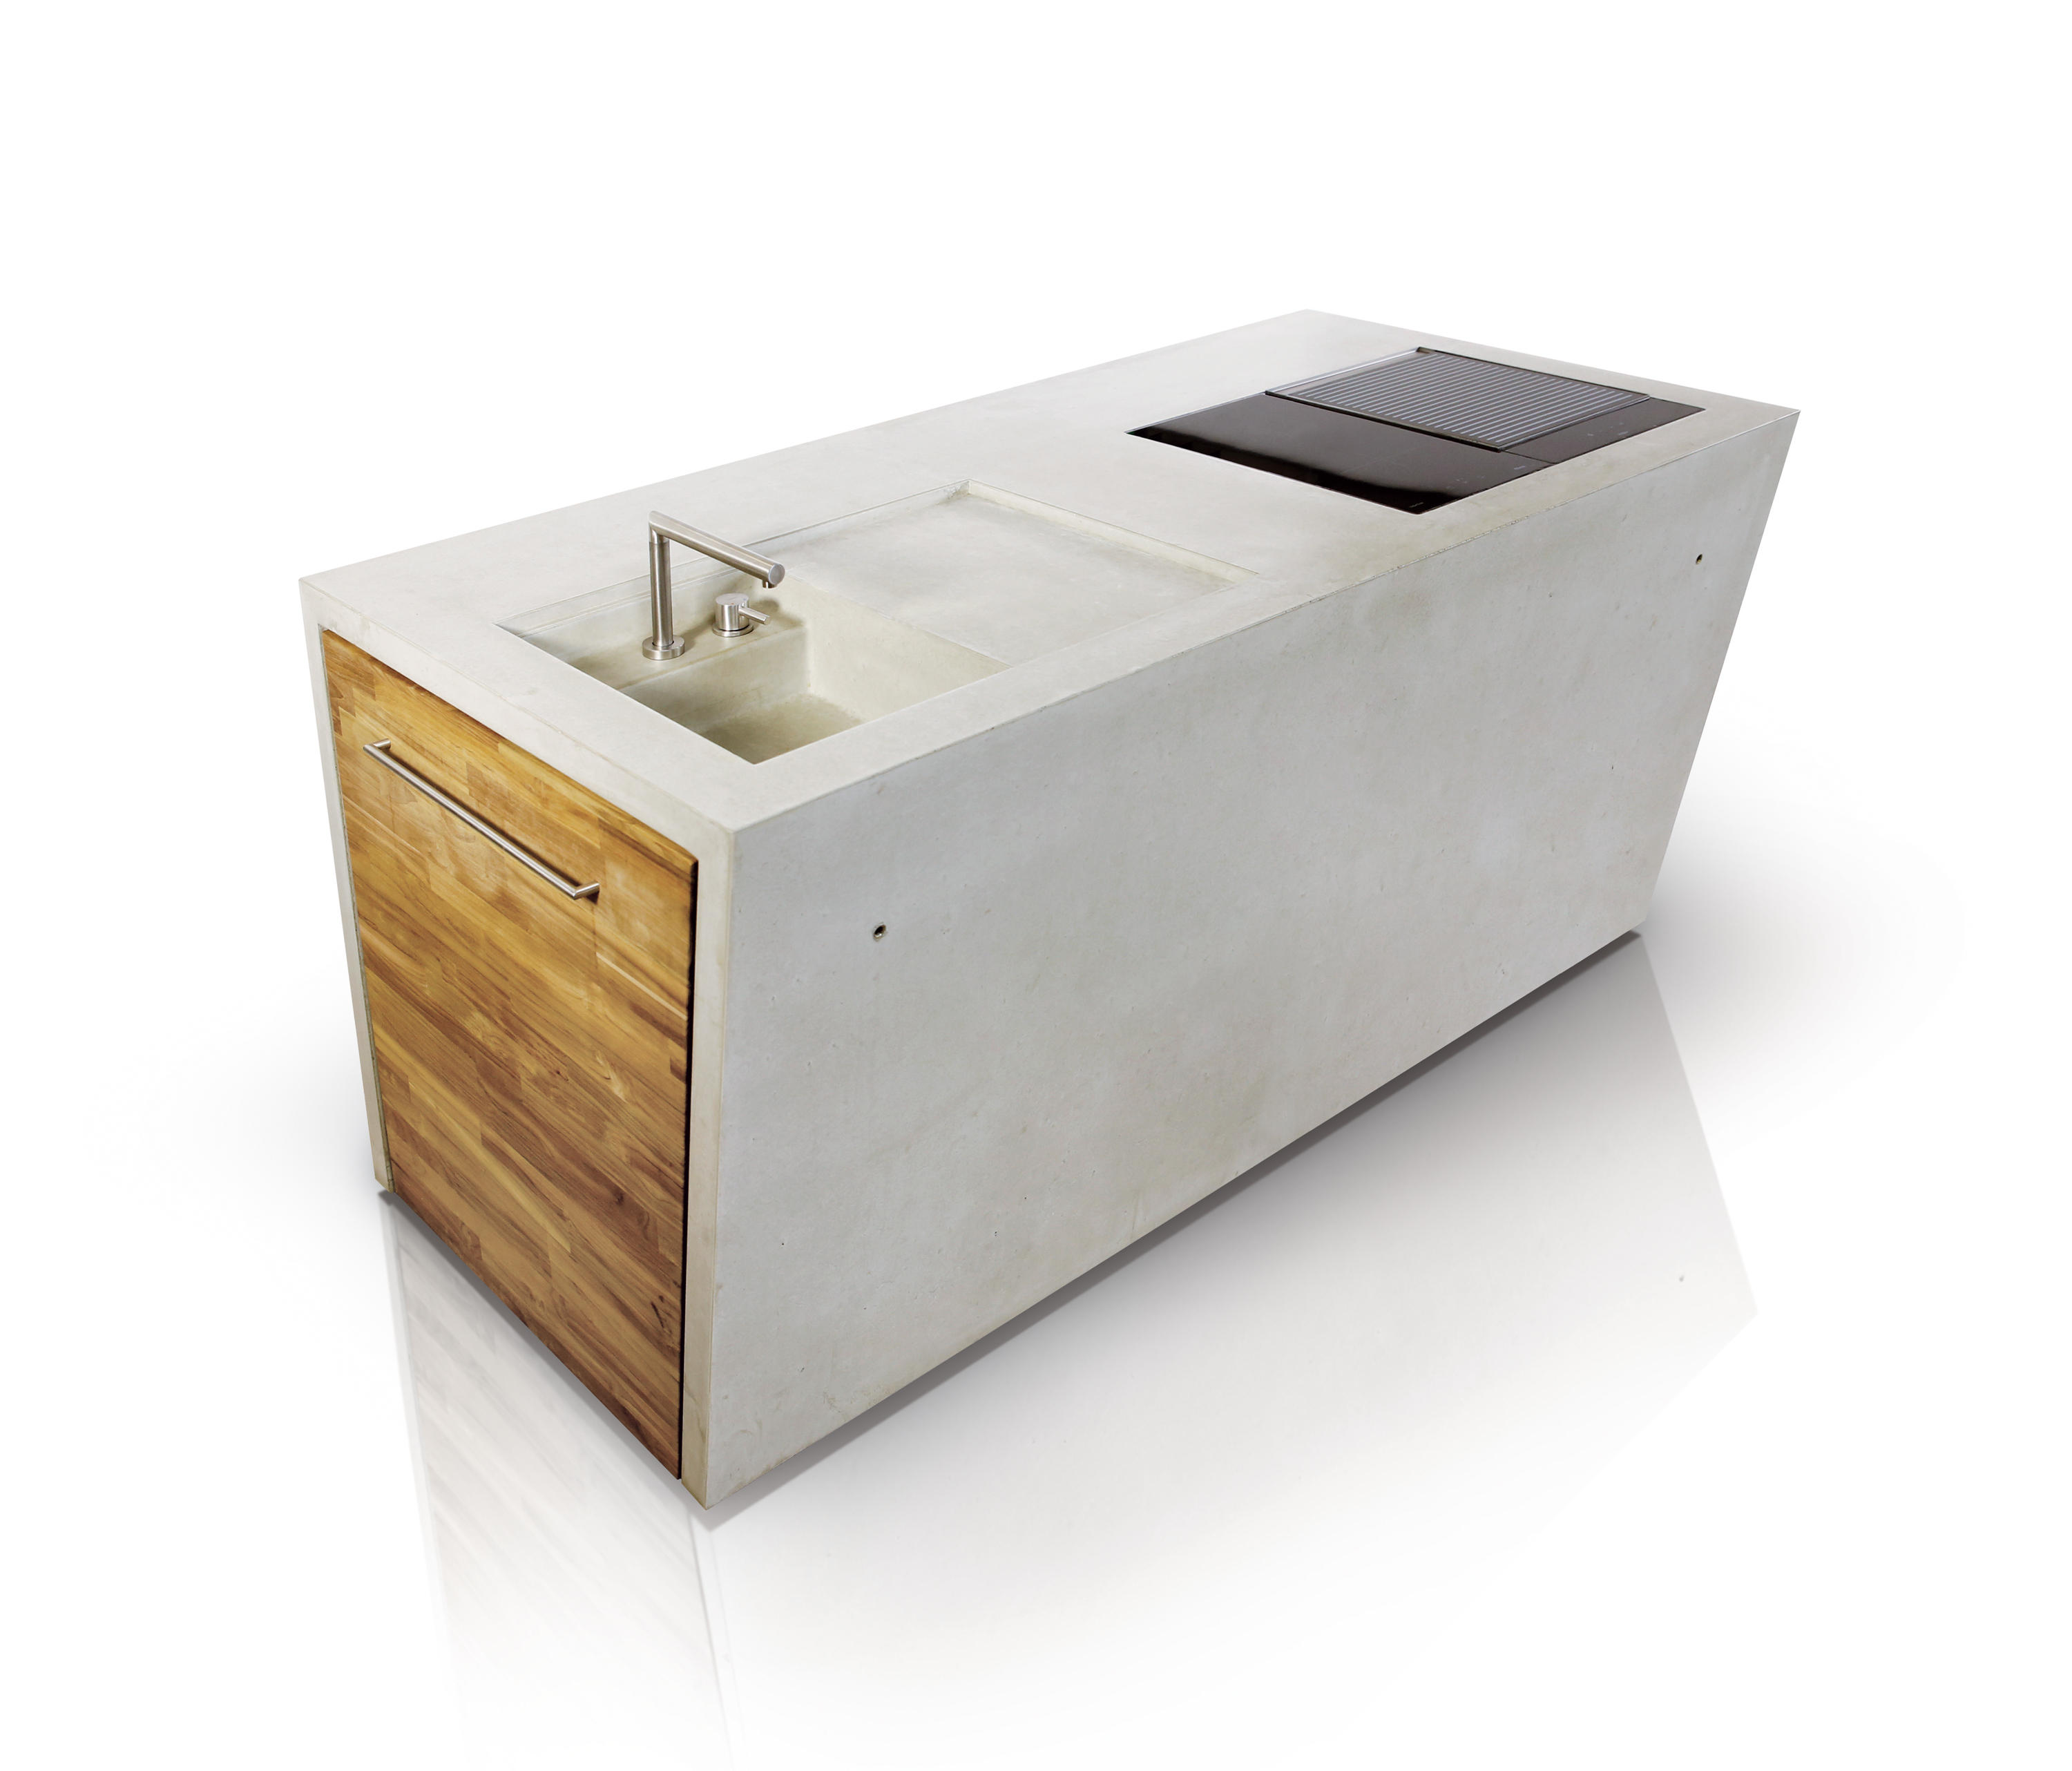 The Concrete Outdoor Kuche Modulkuchen Von Dade Design Ag